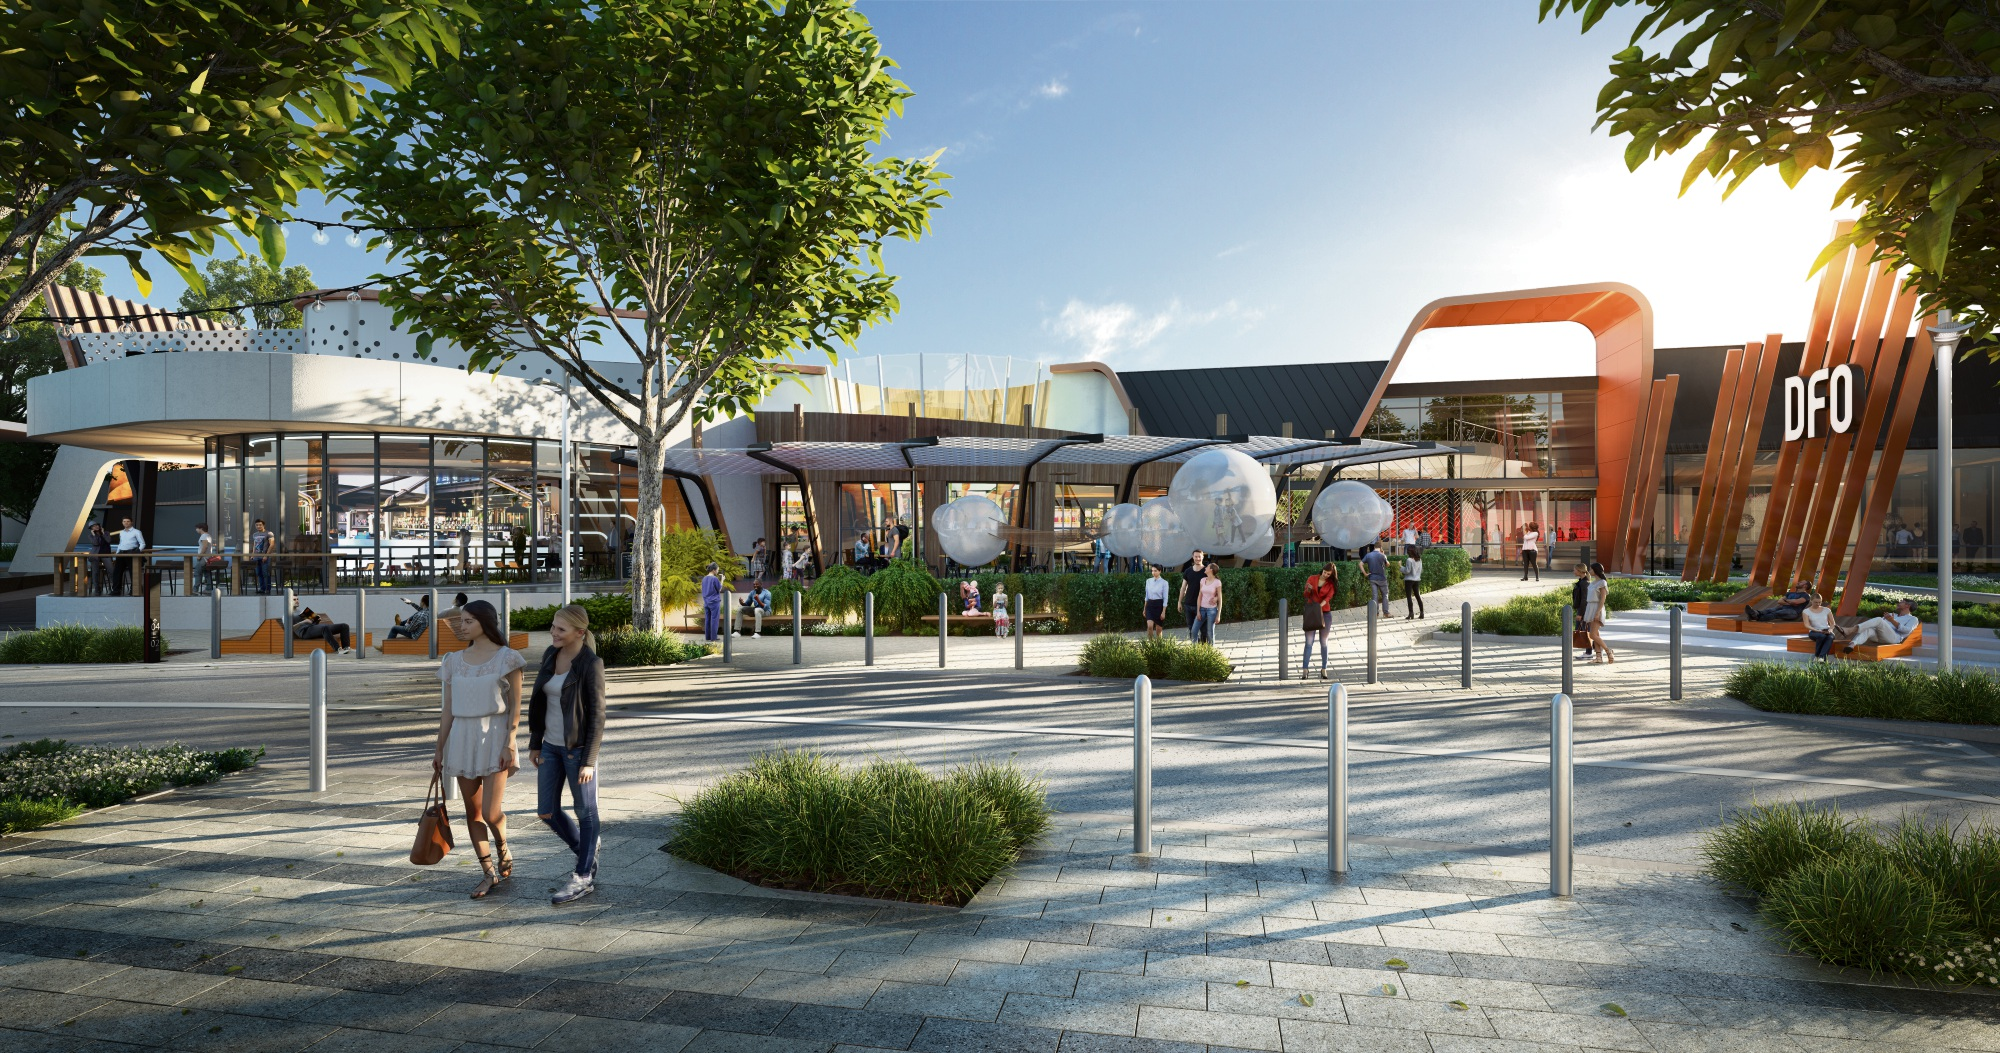 Work begins on WA's first Direct Factory Outlet next to Perth Airport